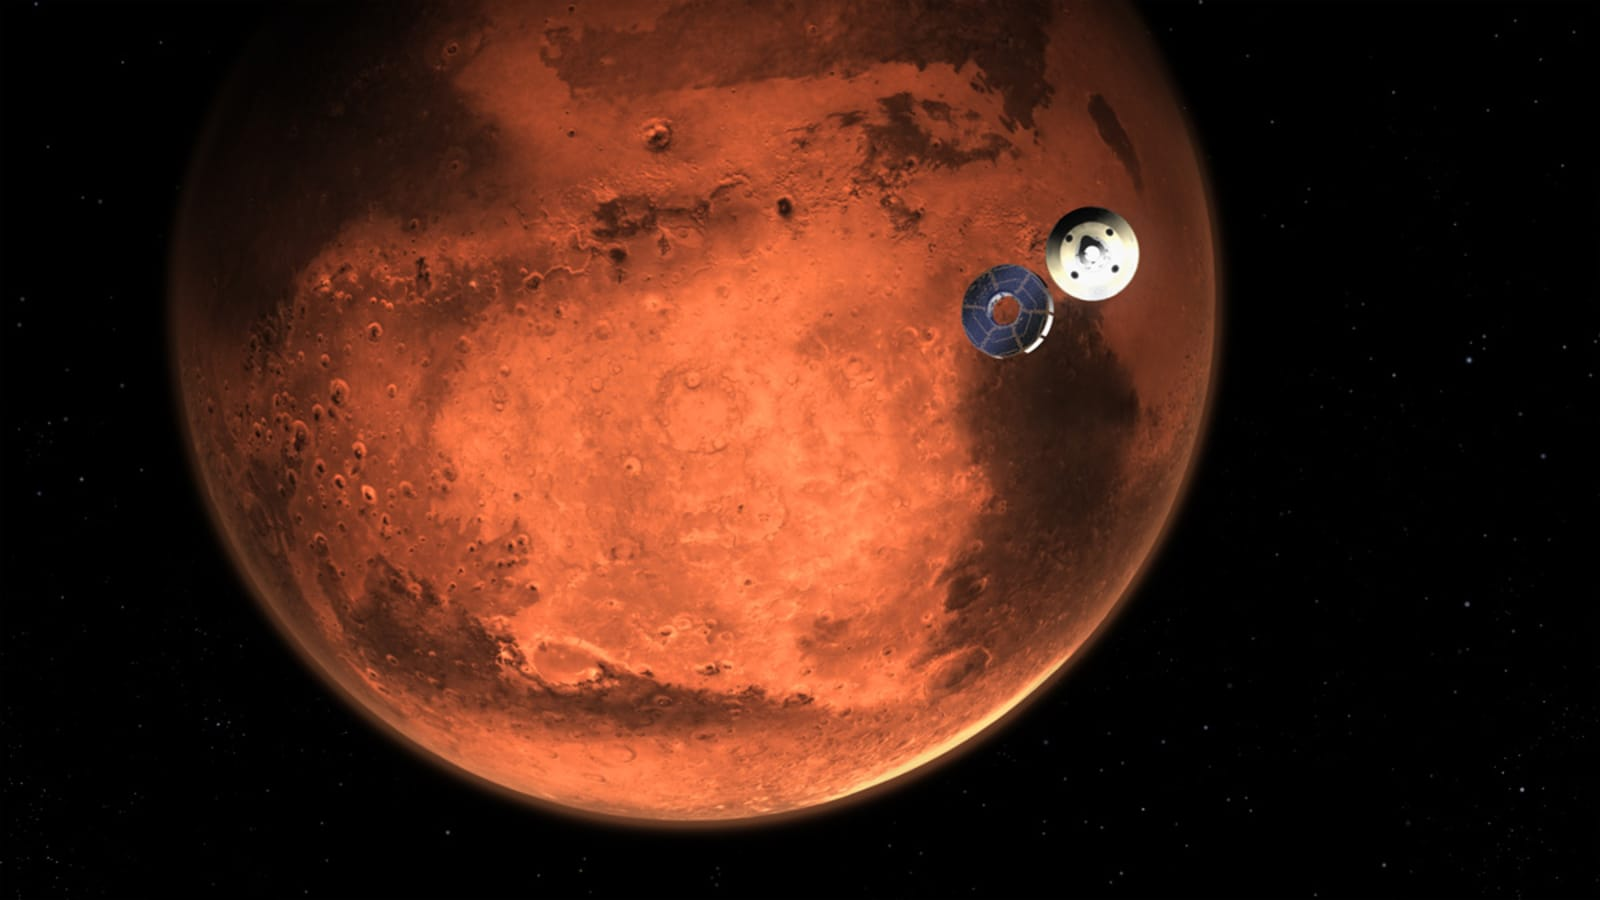 Dangers Await Humans on Mars as Elon Musk Sets His Sights on Colonization